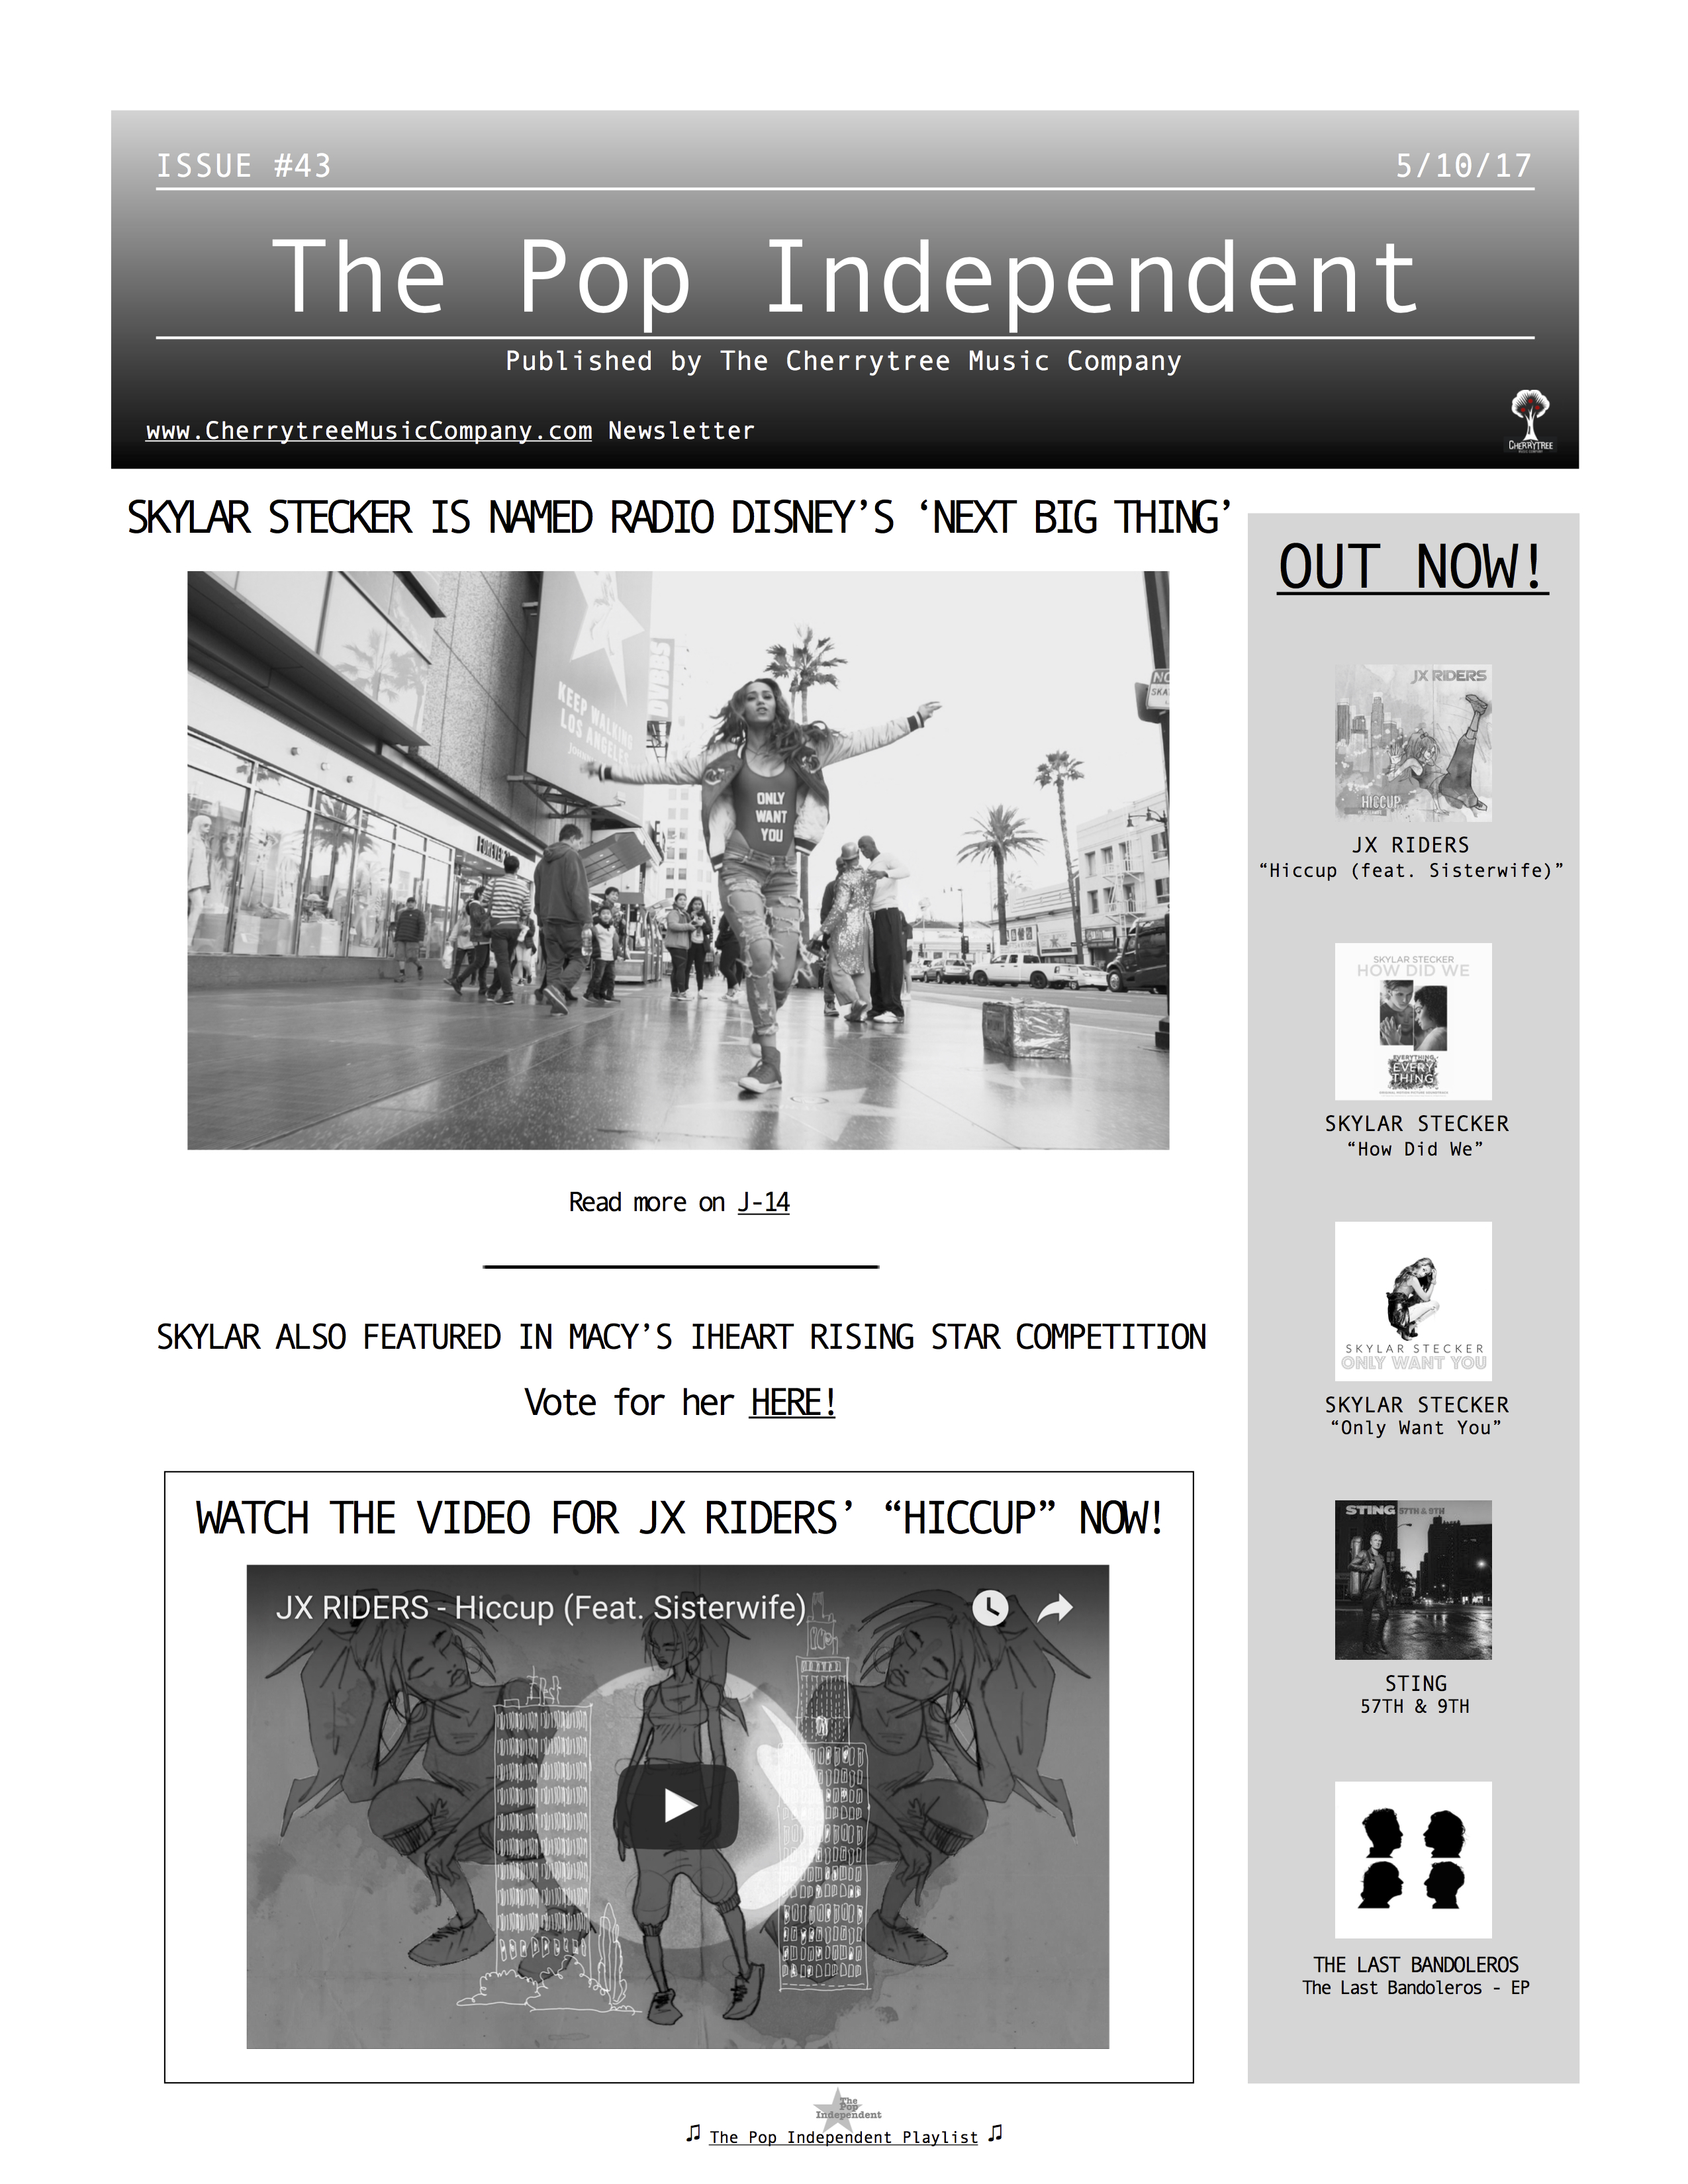 The Pop Independent, issue 43